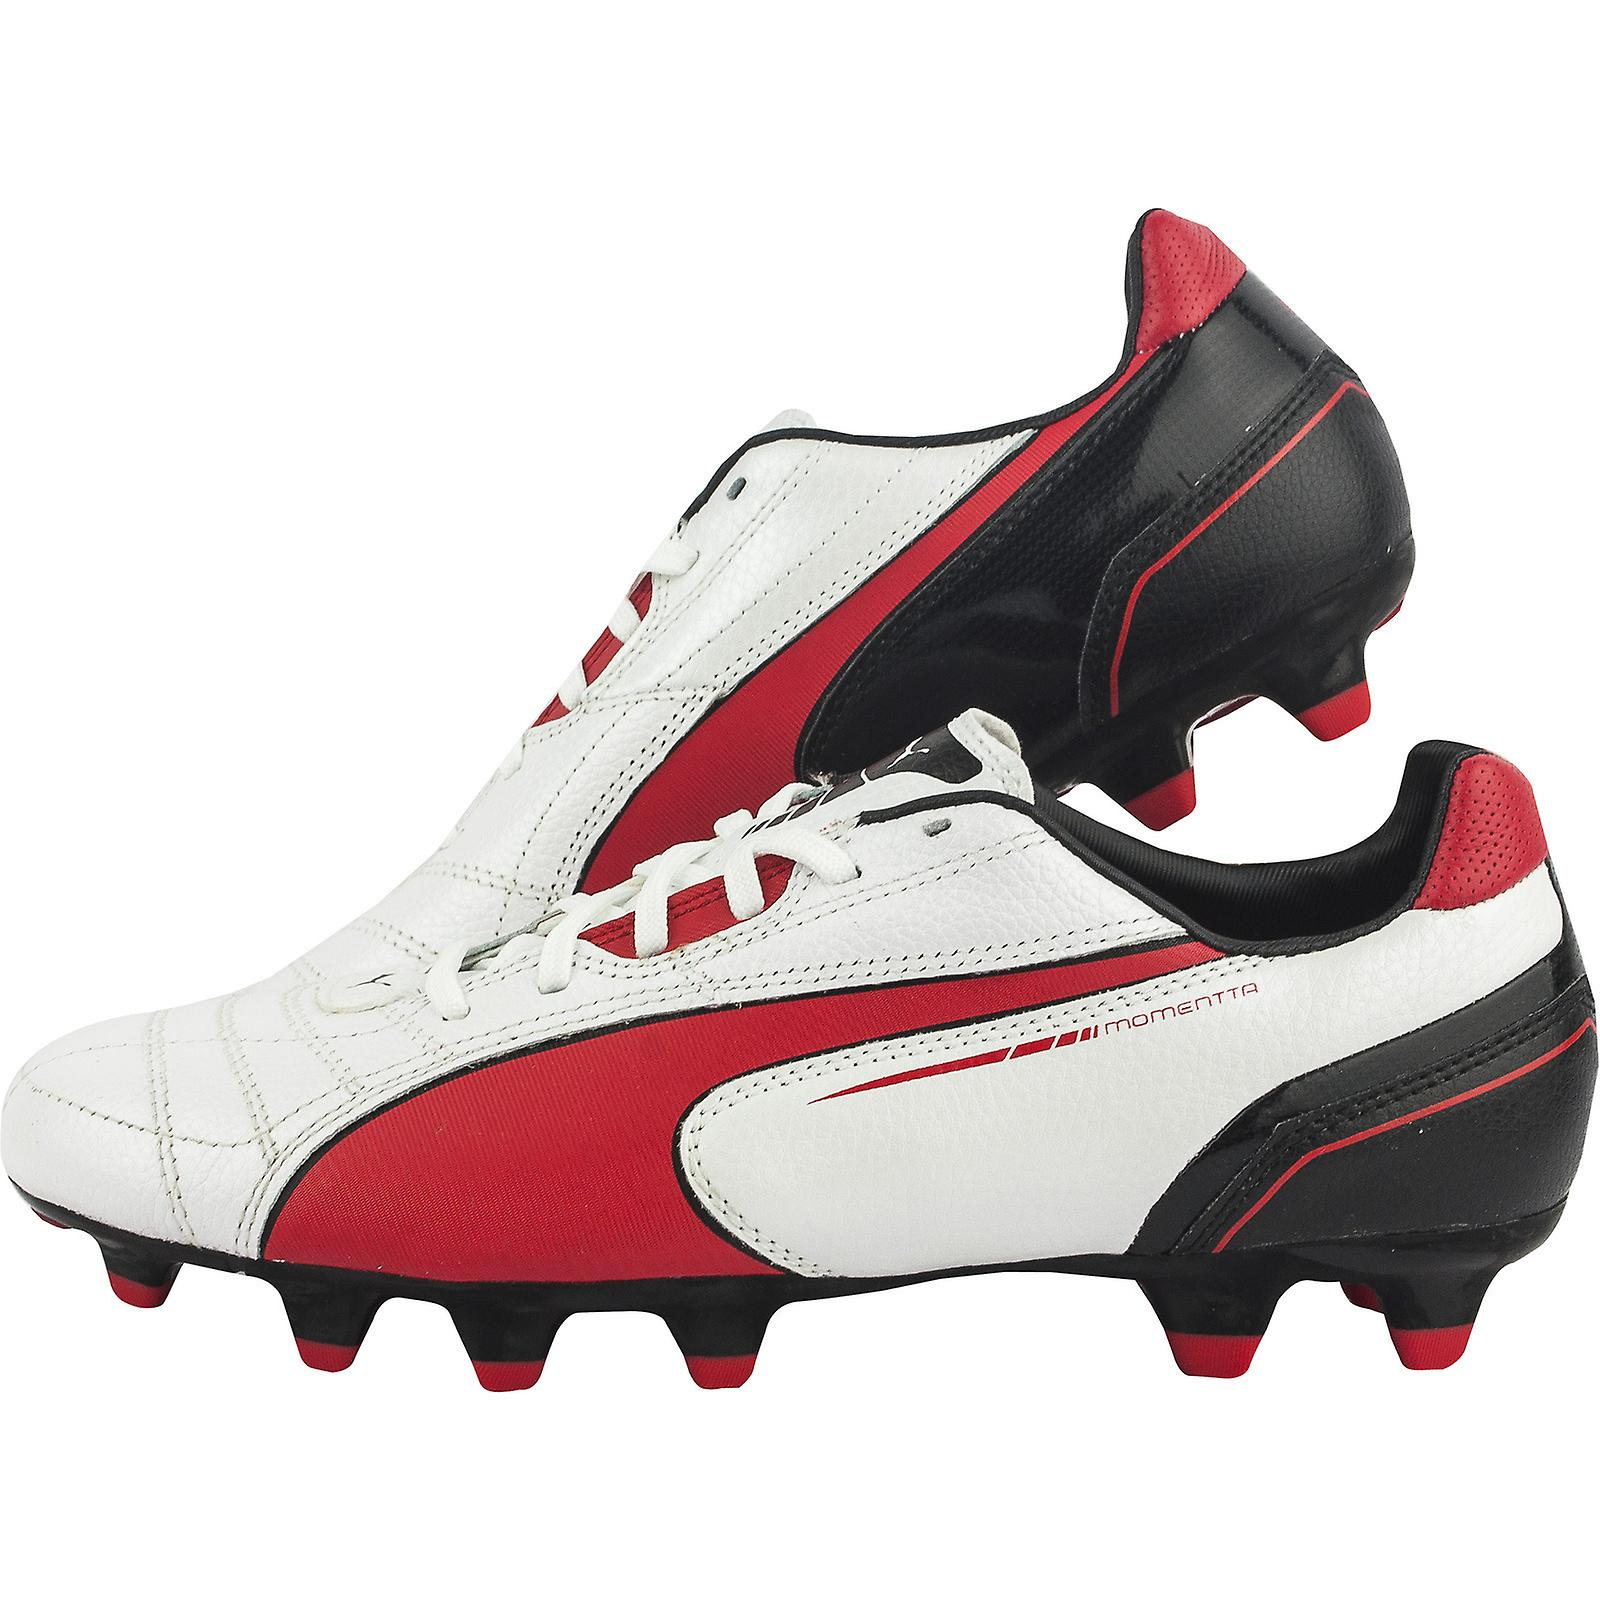 Puma Momentta FG Football Boots (White-Red-Black)